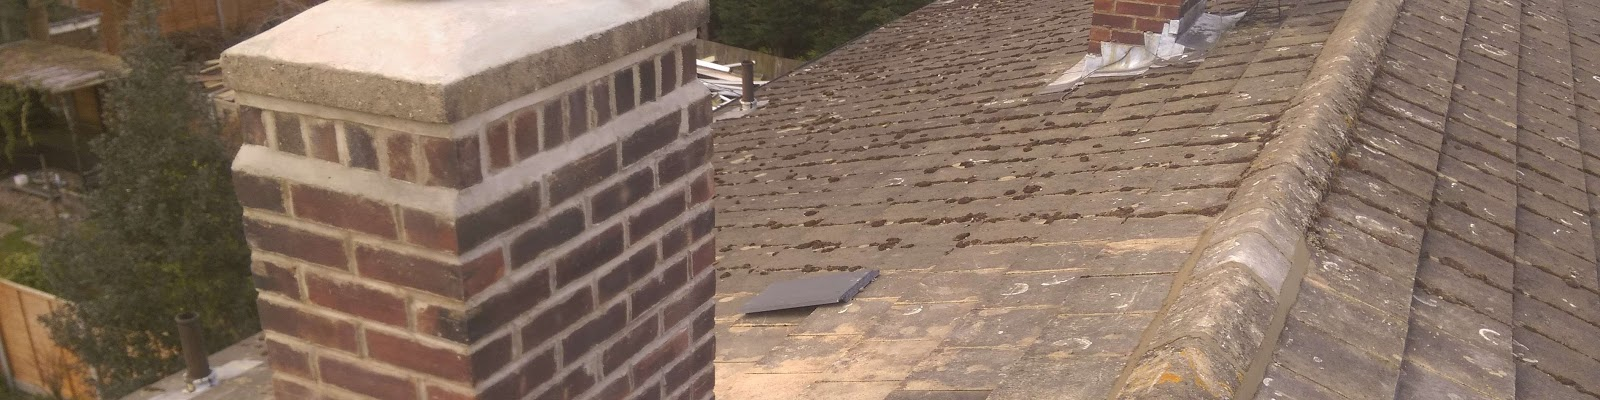 An old roof with a chimney with recently installed slates